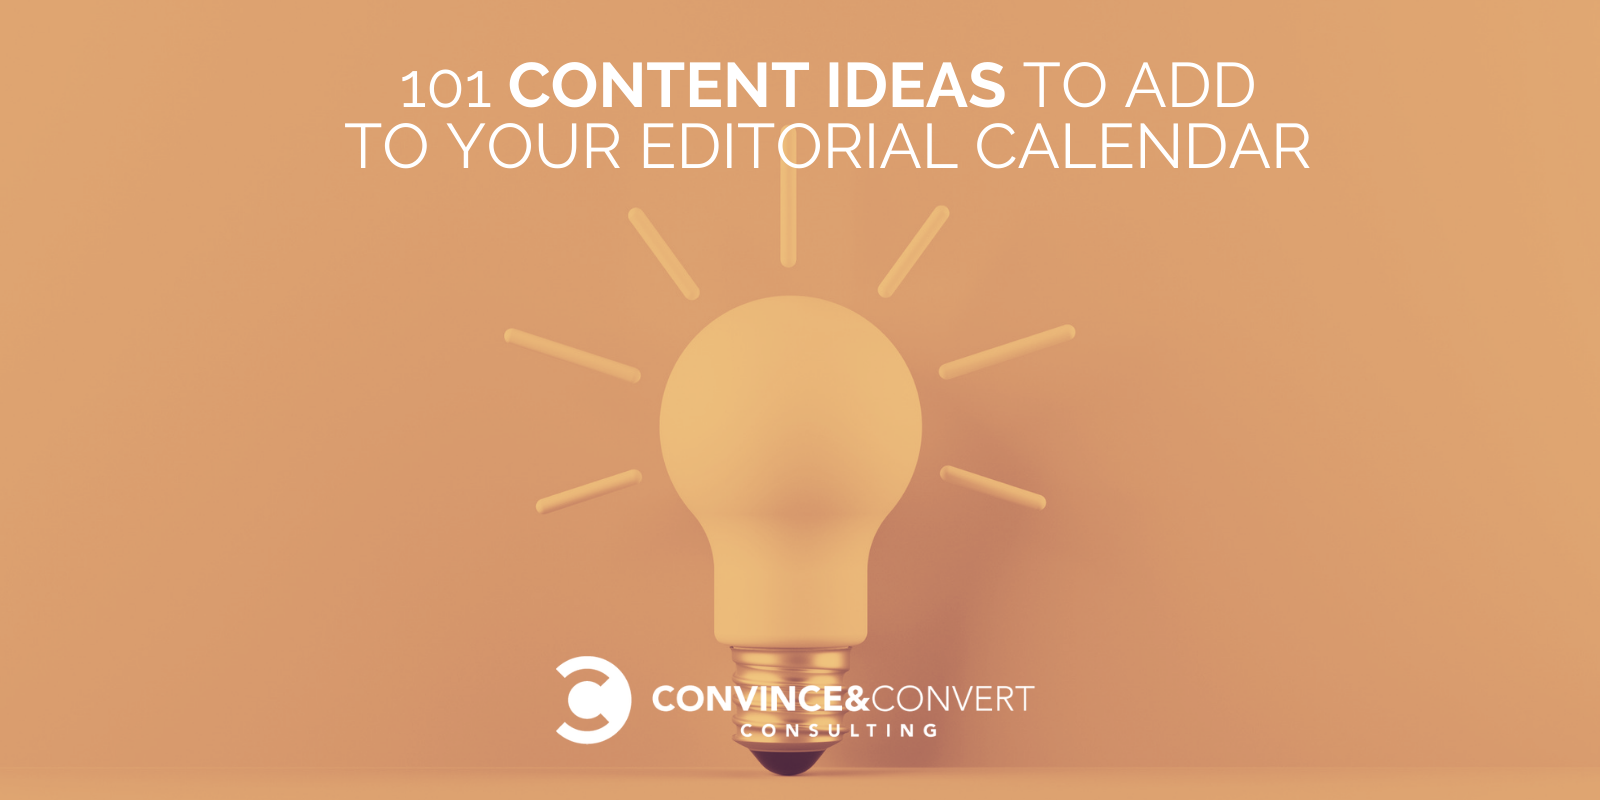 101 Recount Suggestions to Add to Your Editorial Calendar